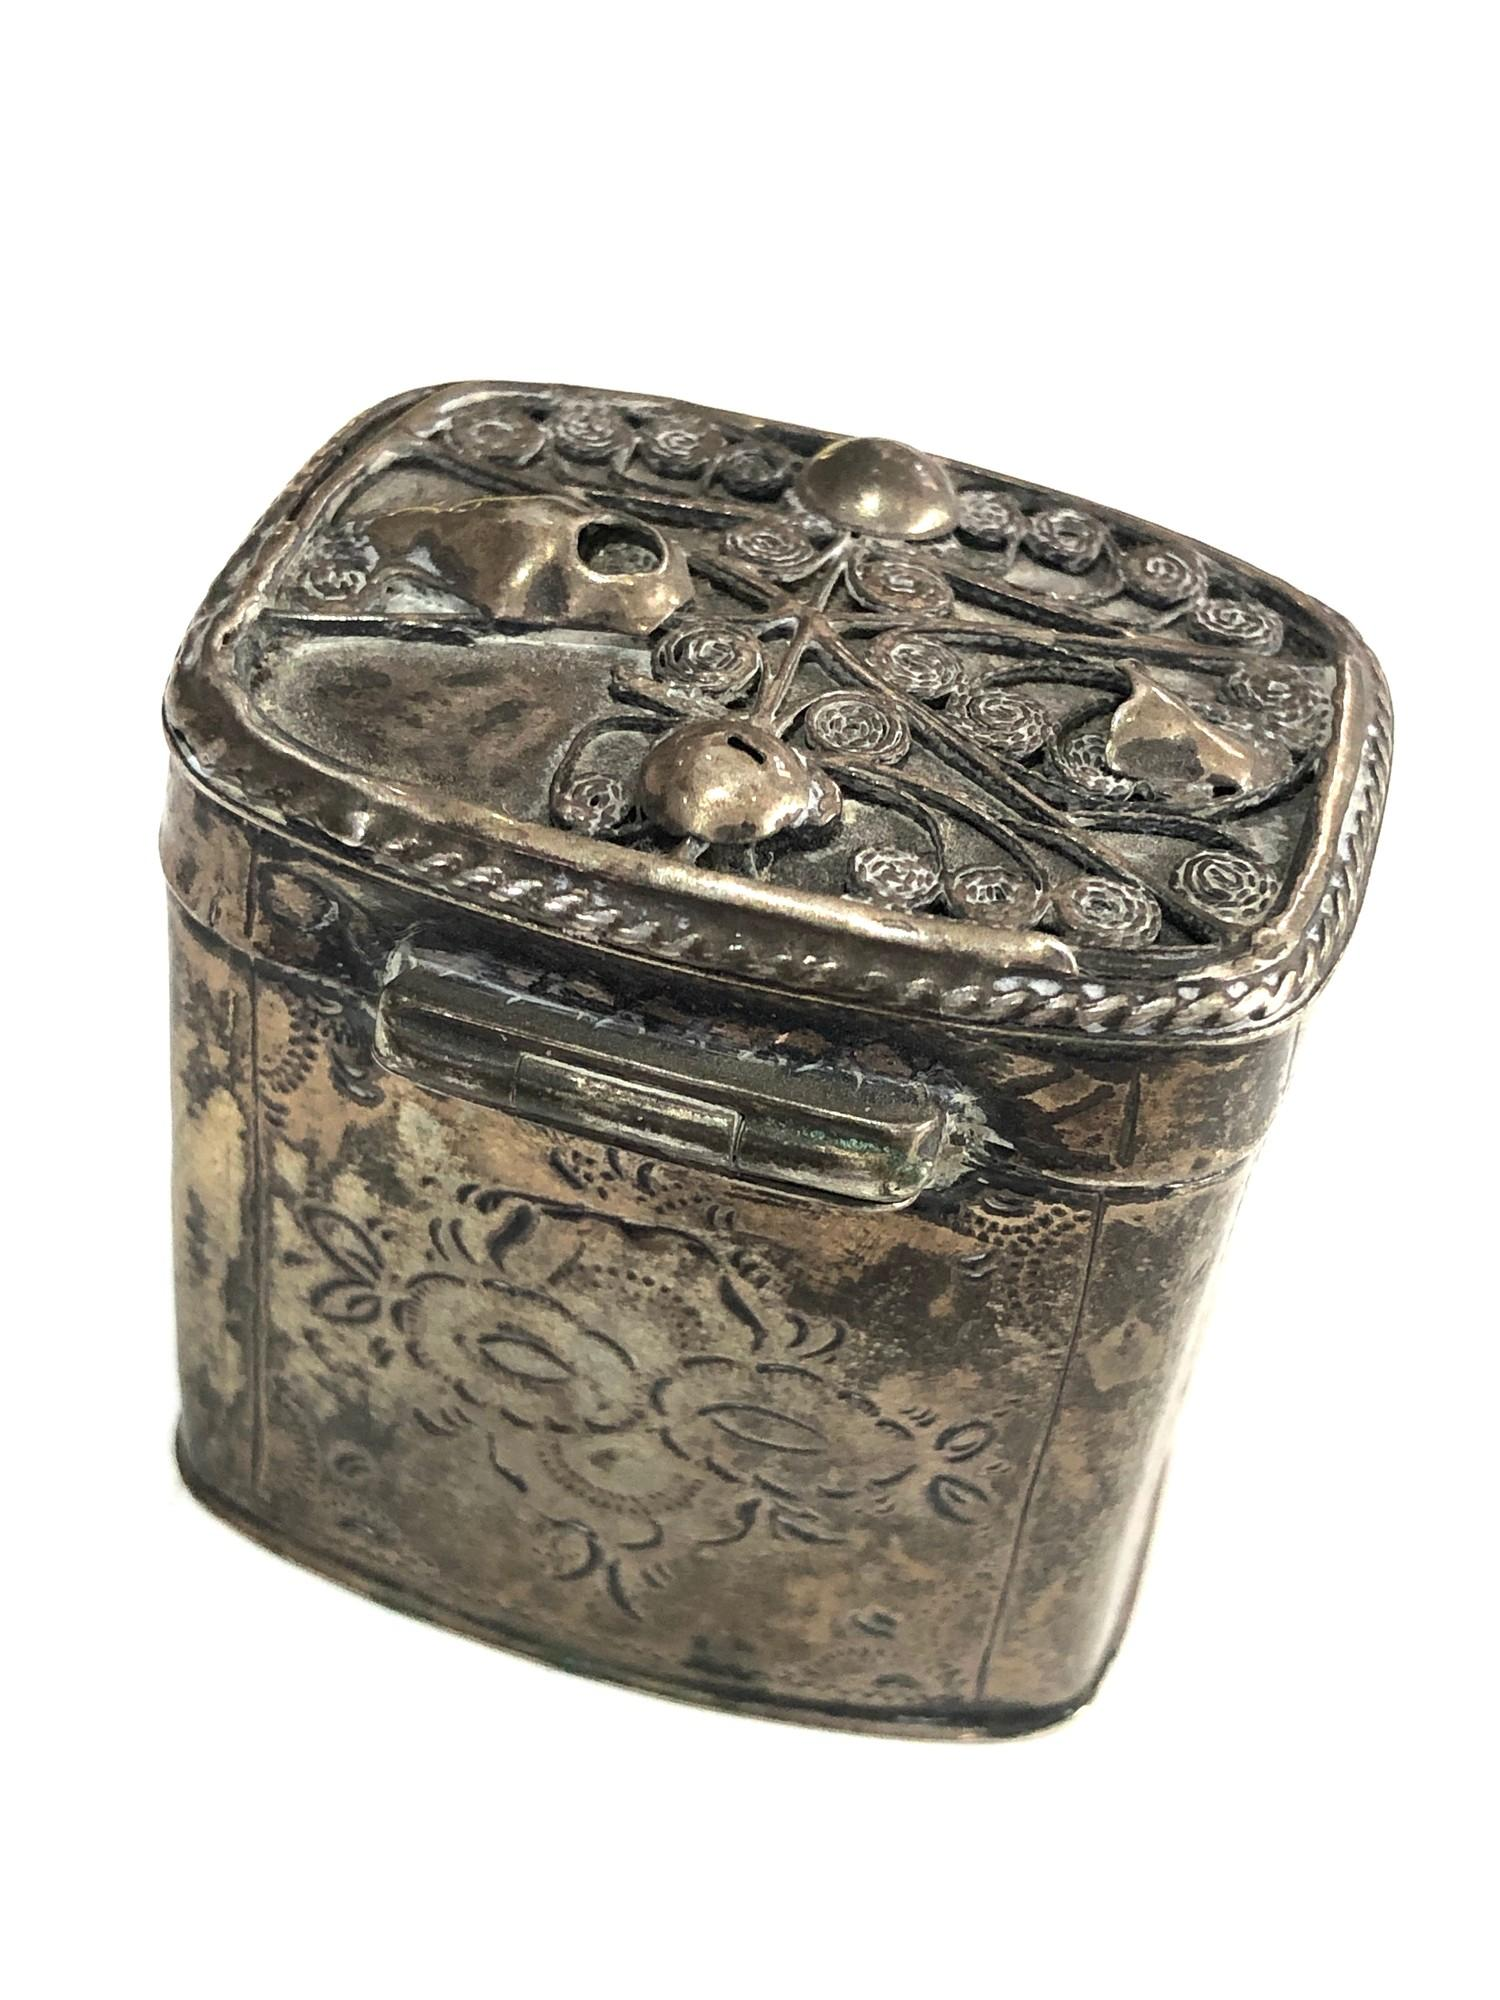 Antique Dutch silver peppermint box measures approx 4cm high and 4cm by 3cm age related wear dent - Image 3 of 6